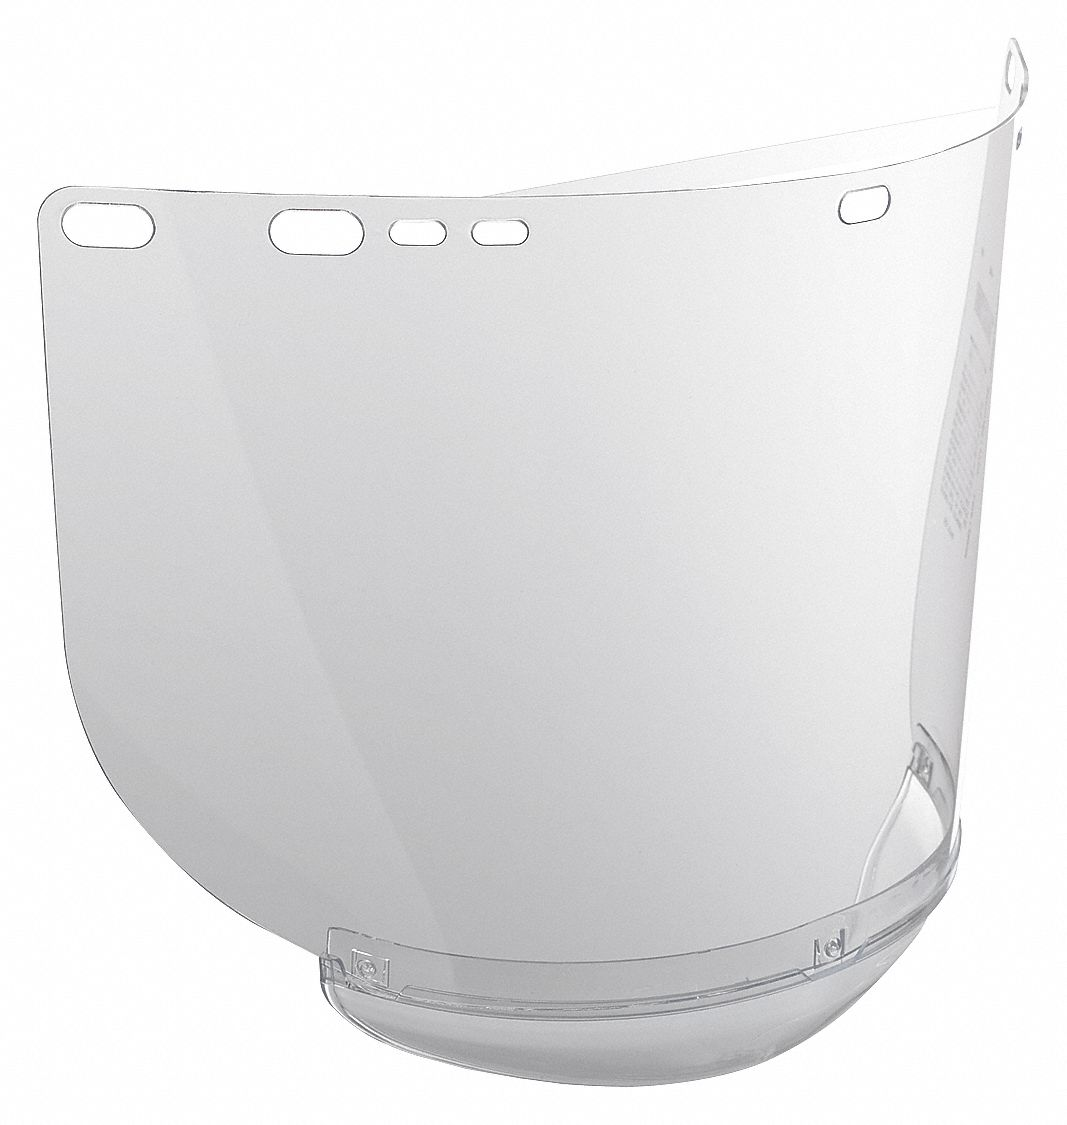 Face Shield,  For Use With Mfr. No. 29077